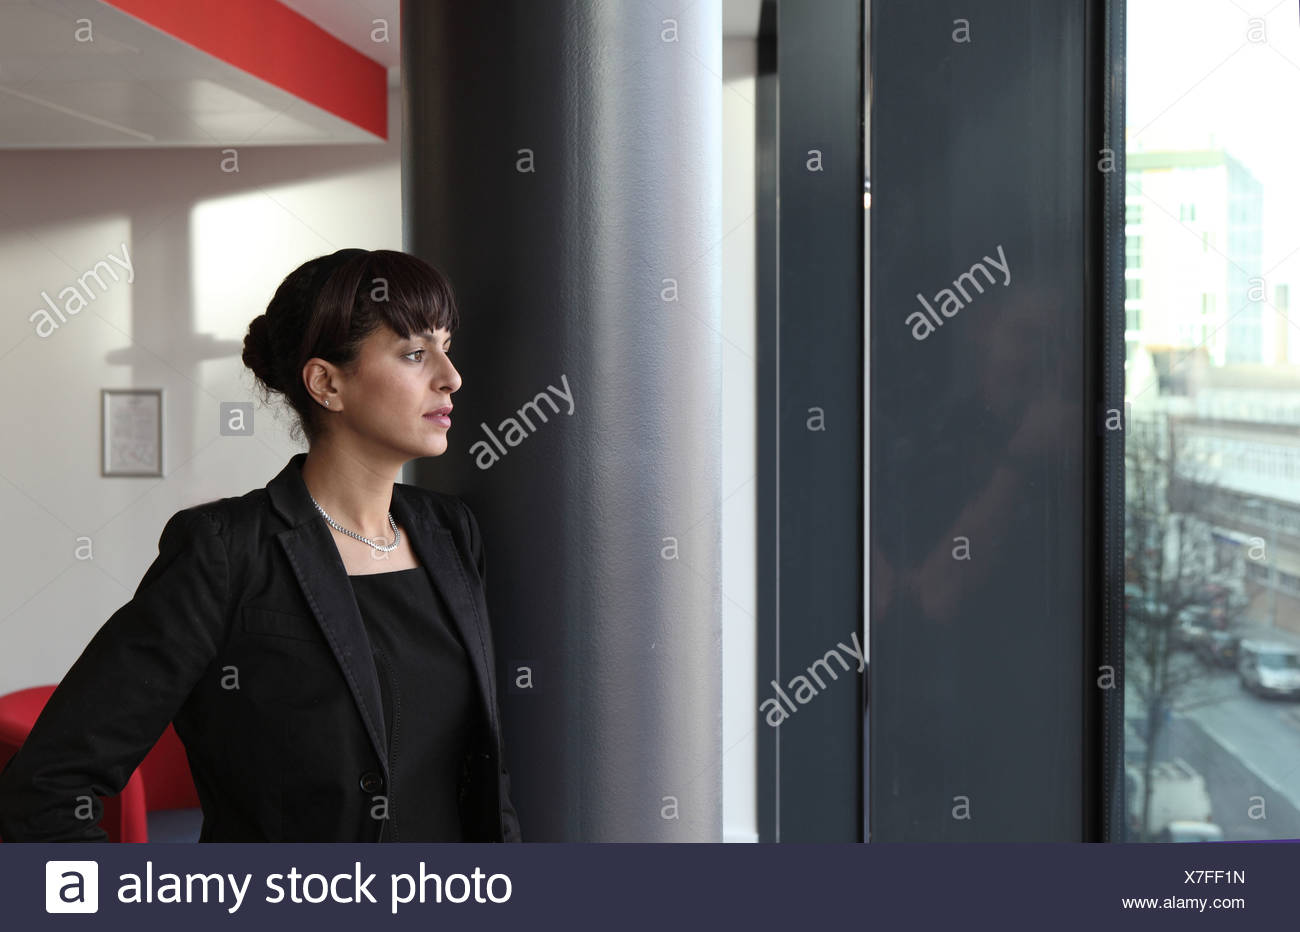 Businesswoman looking out office window - Stock Image